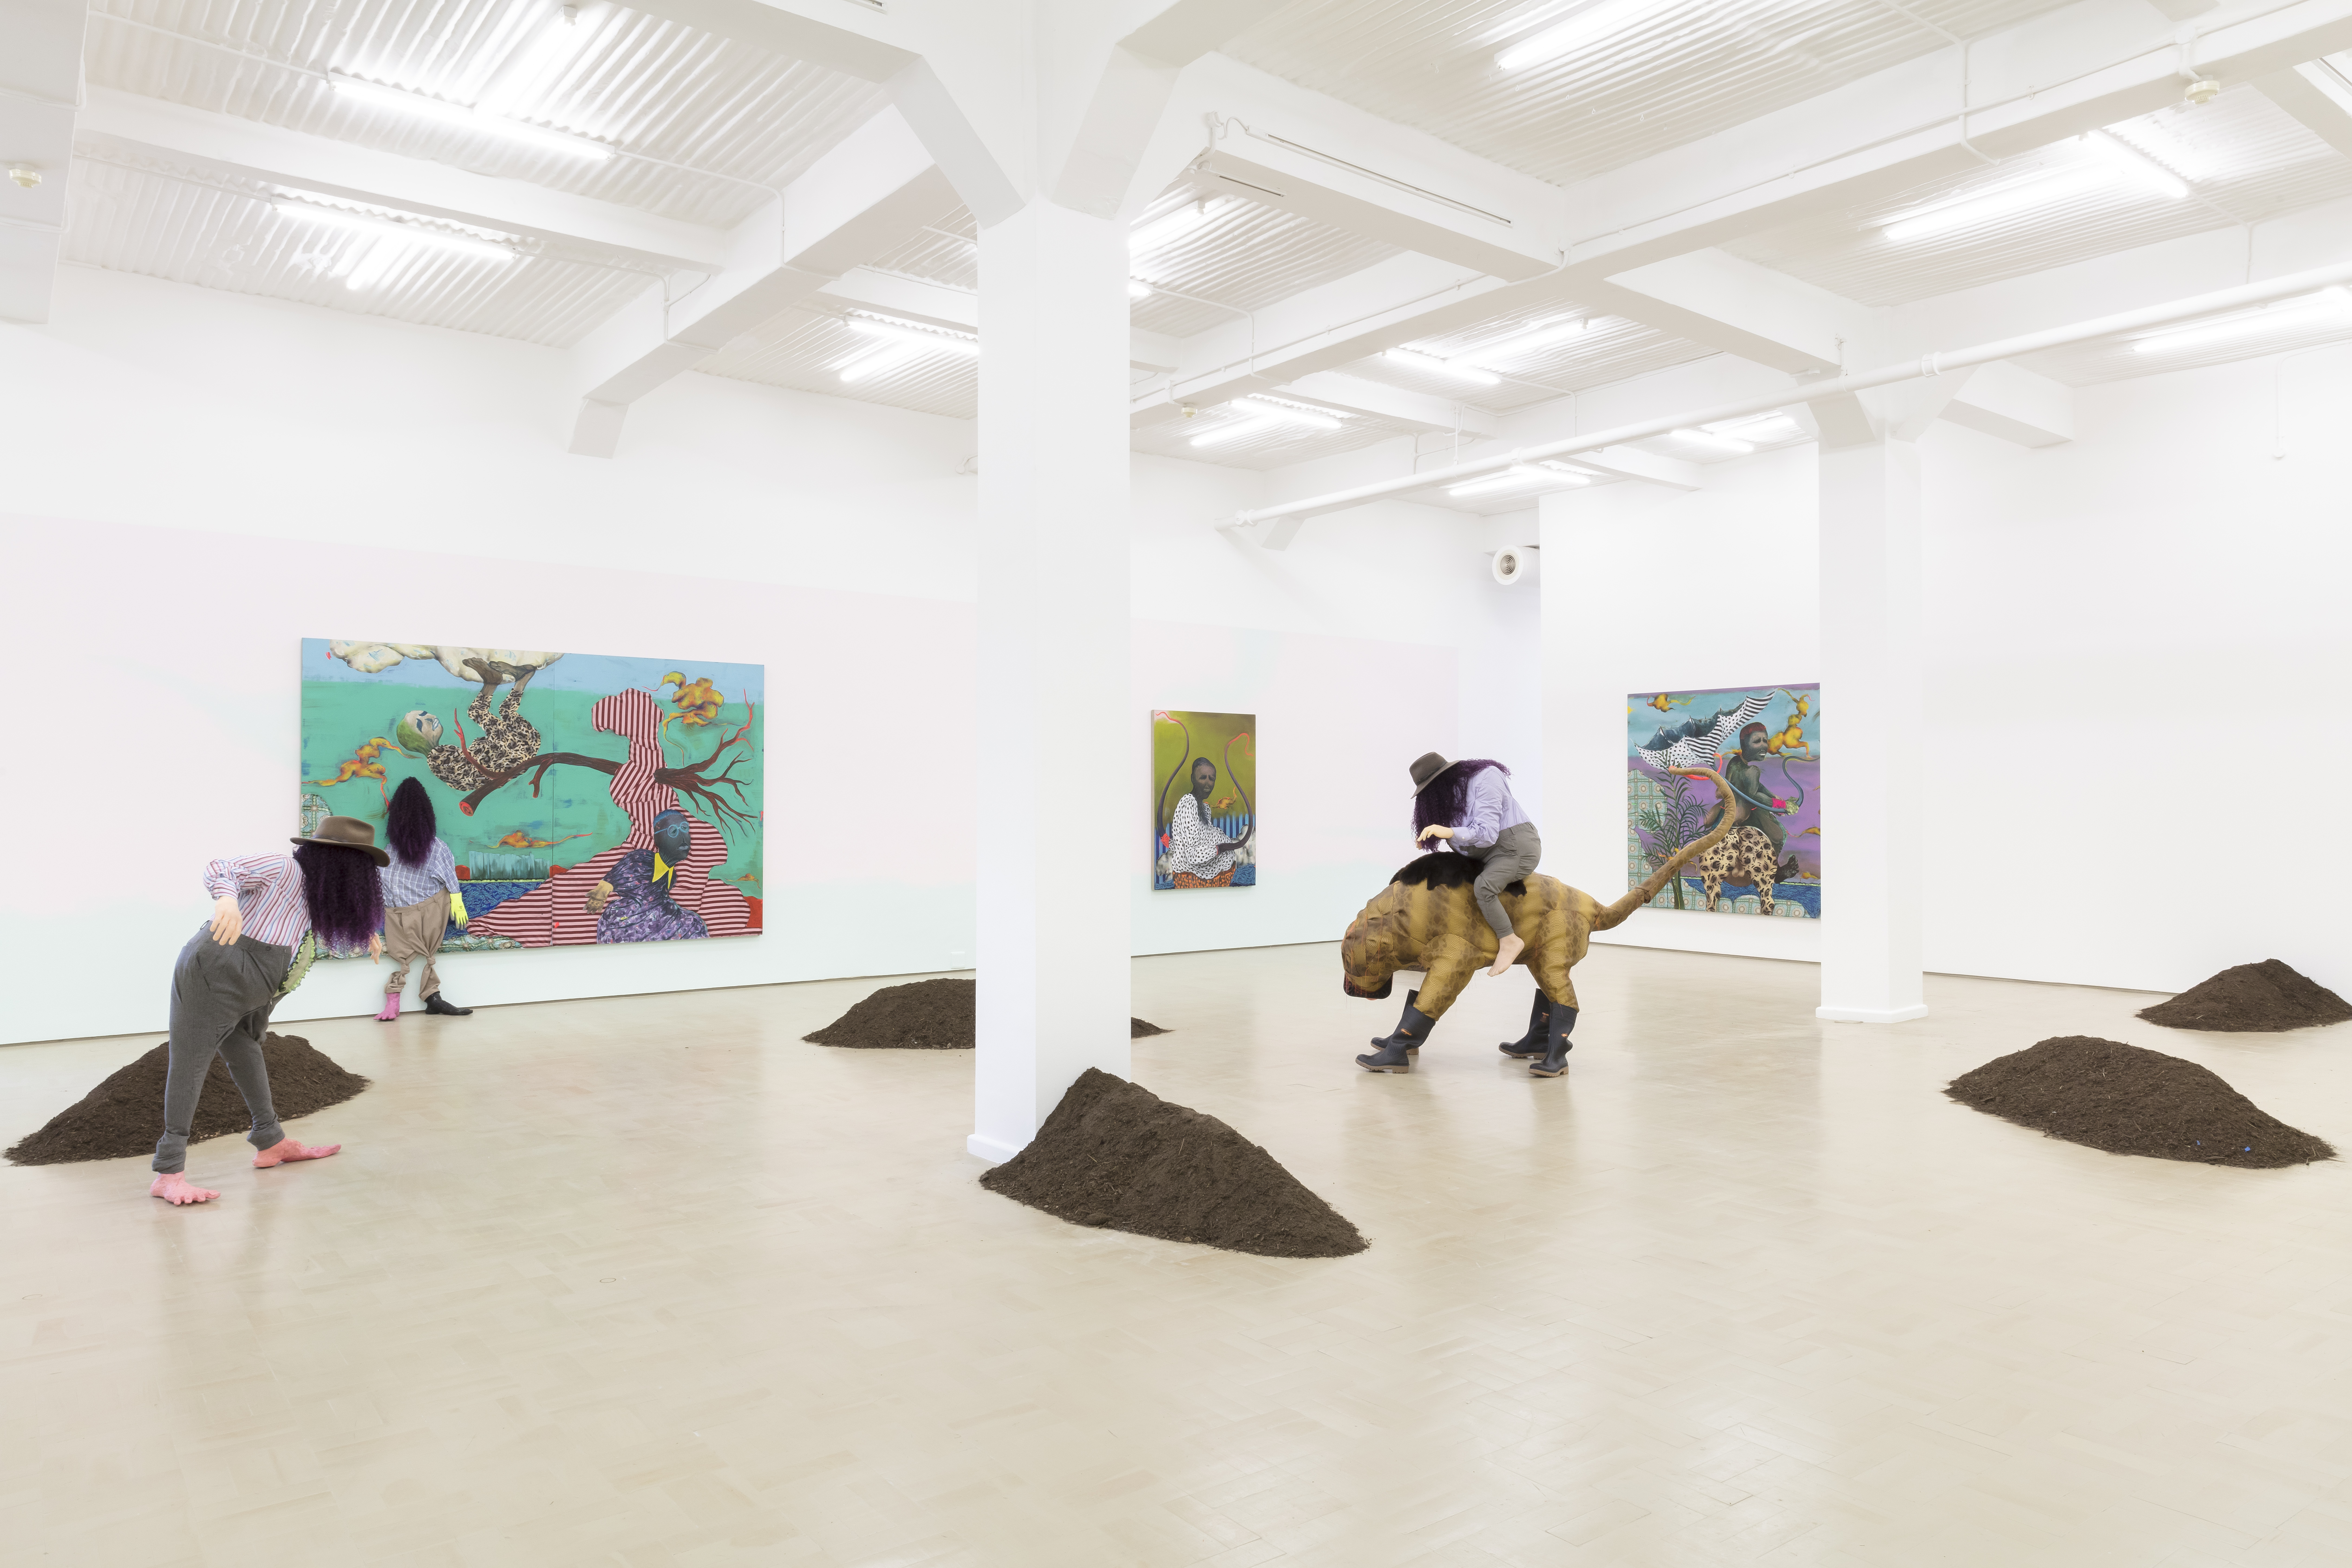 """Simphiwe Ndzube """"Uncharted Lands and Trackless Seas"""", 2018. Installation View Stevenson, Cape Town. Courtesy, Stevenson Gallery."""